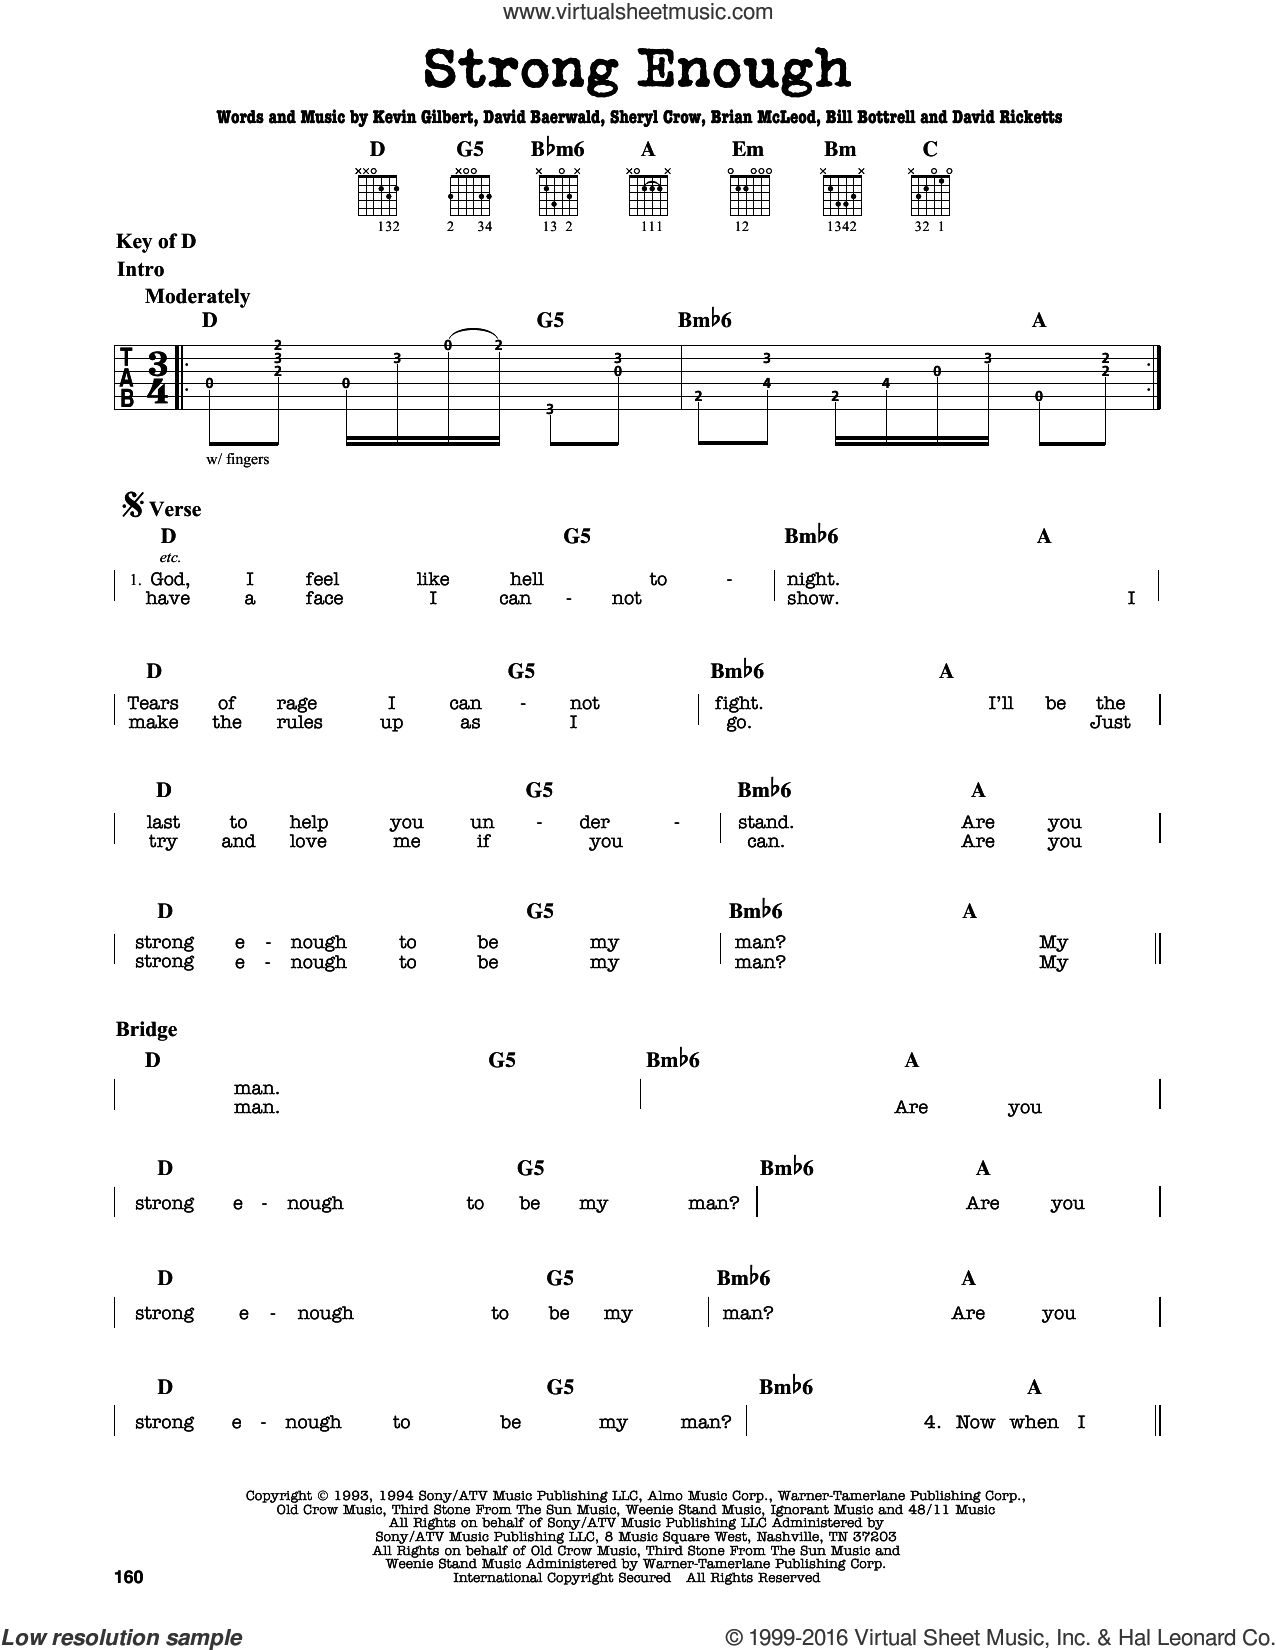 Strong Enough sheet music for guitar solo (lead sheet) by Kevin Gilbert, Bill Bottrell, Brian MacLeod, David Baerwald, David Ricketts and Sheryl Crow. Score Image Preview.